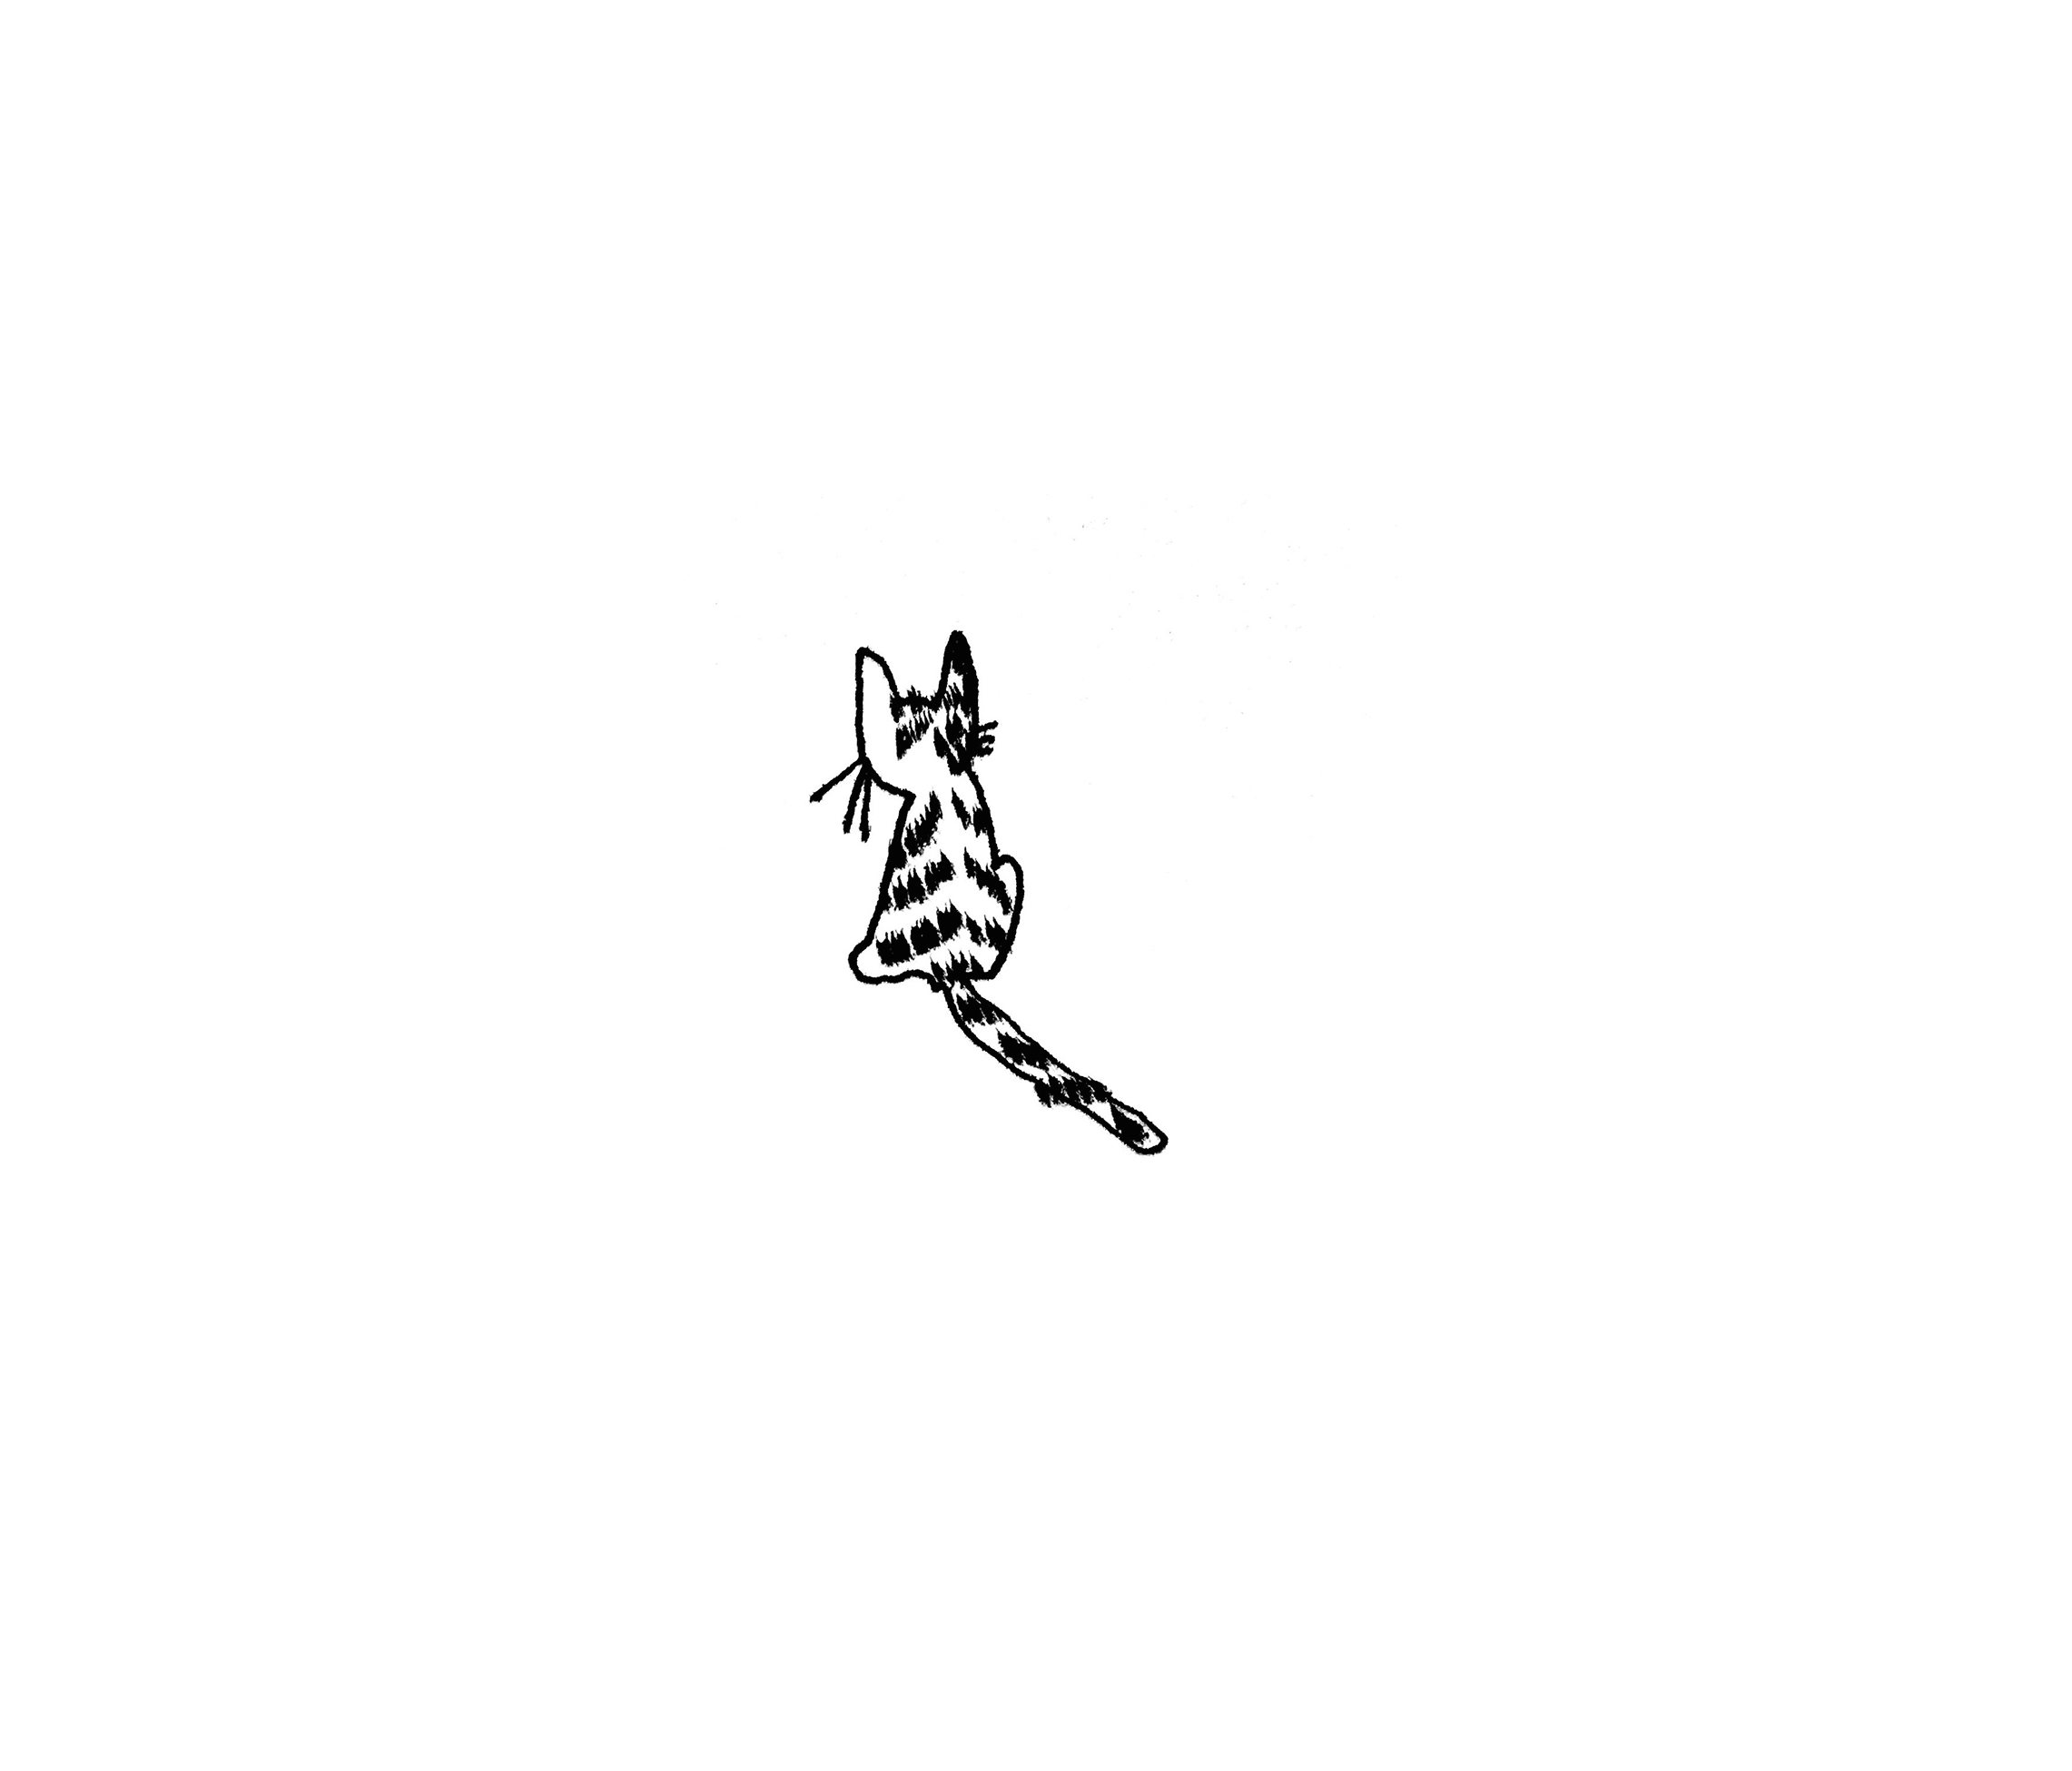 small cats 3.png